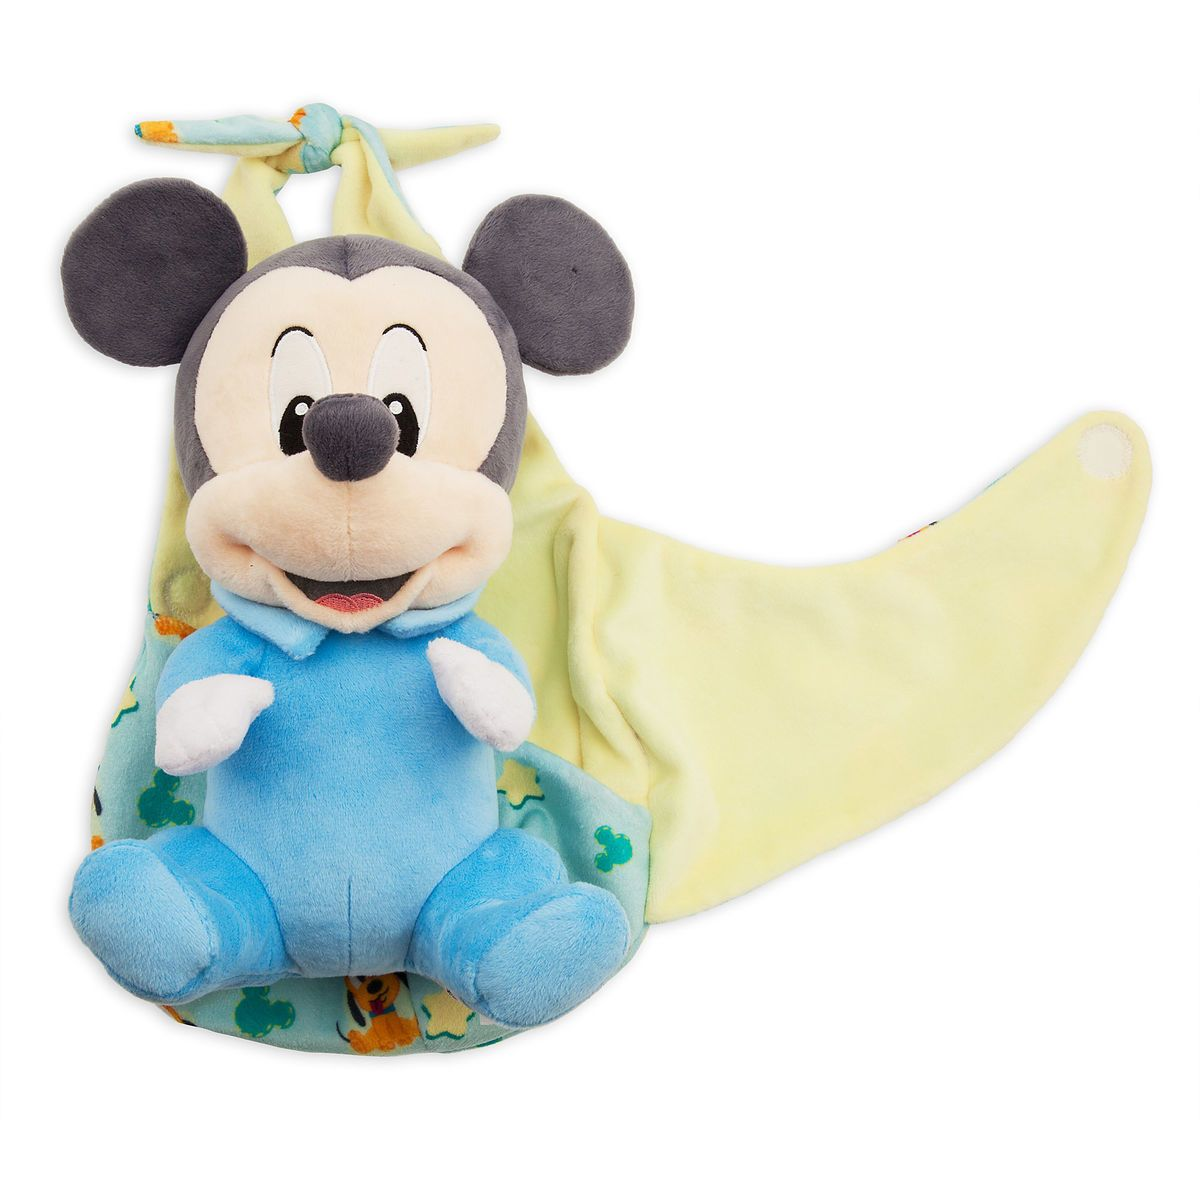 Predownload: Mickey Mouse Plush In Pouch Disney Babies Small Shopdisney In 2021 Baby Disney Disney Toy Collection Baby Mouse [ 1200 x 1200 Pixel ]